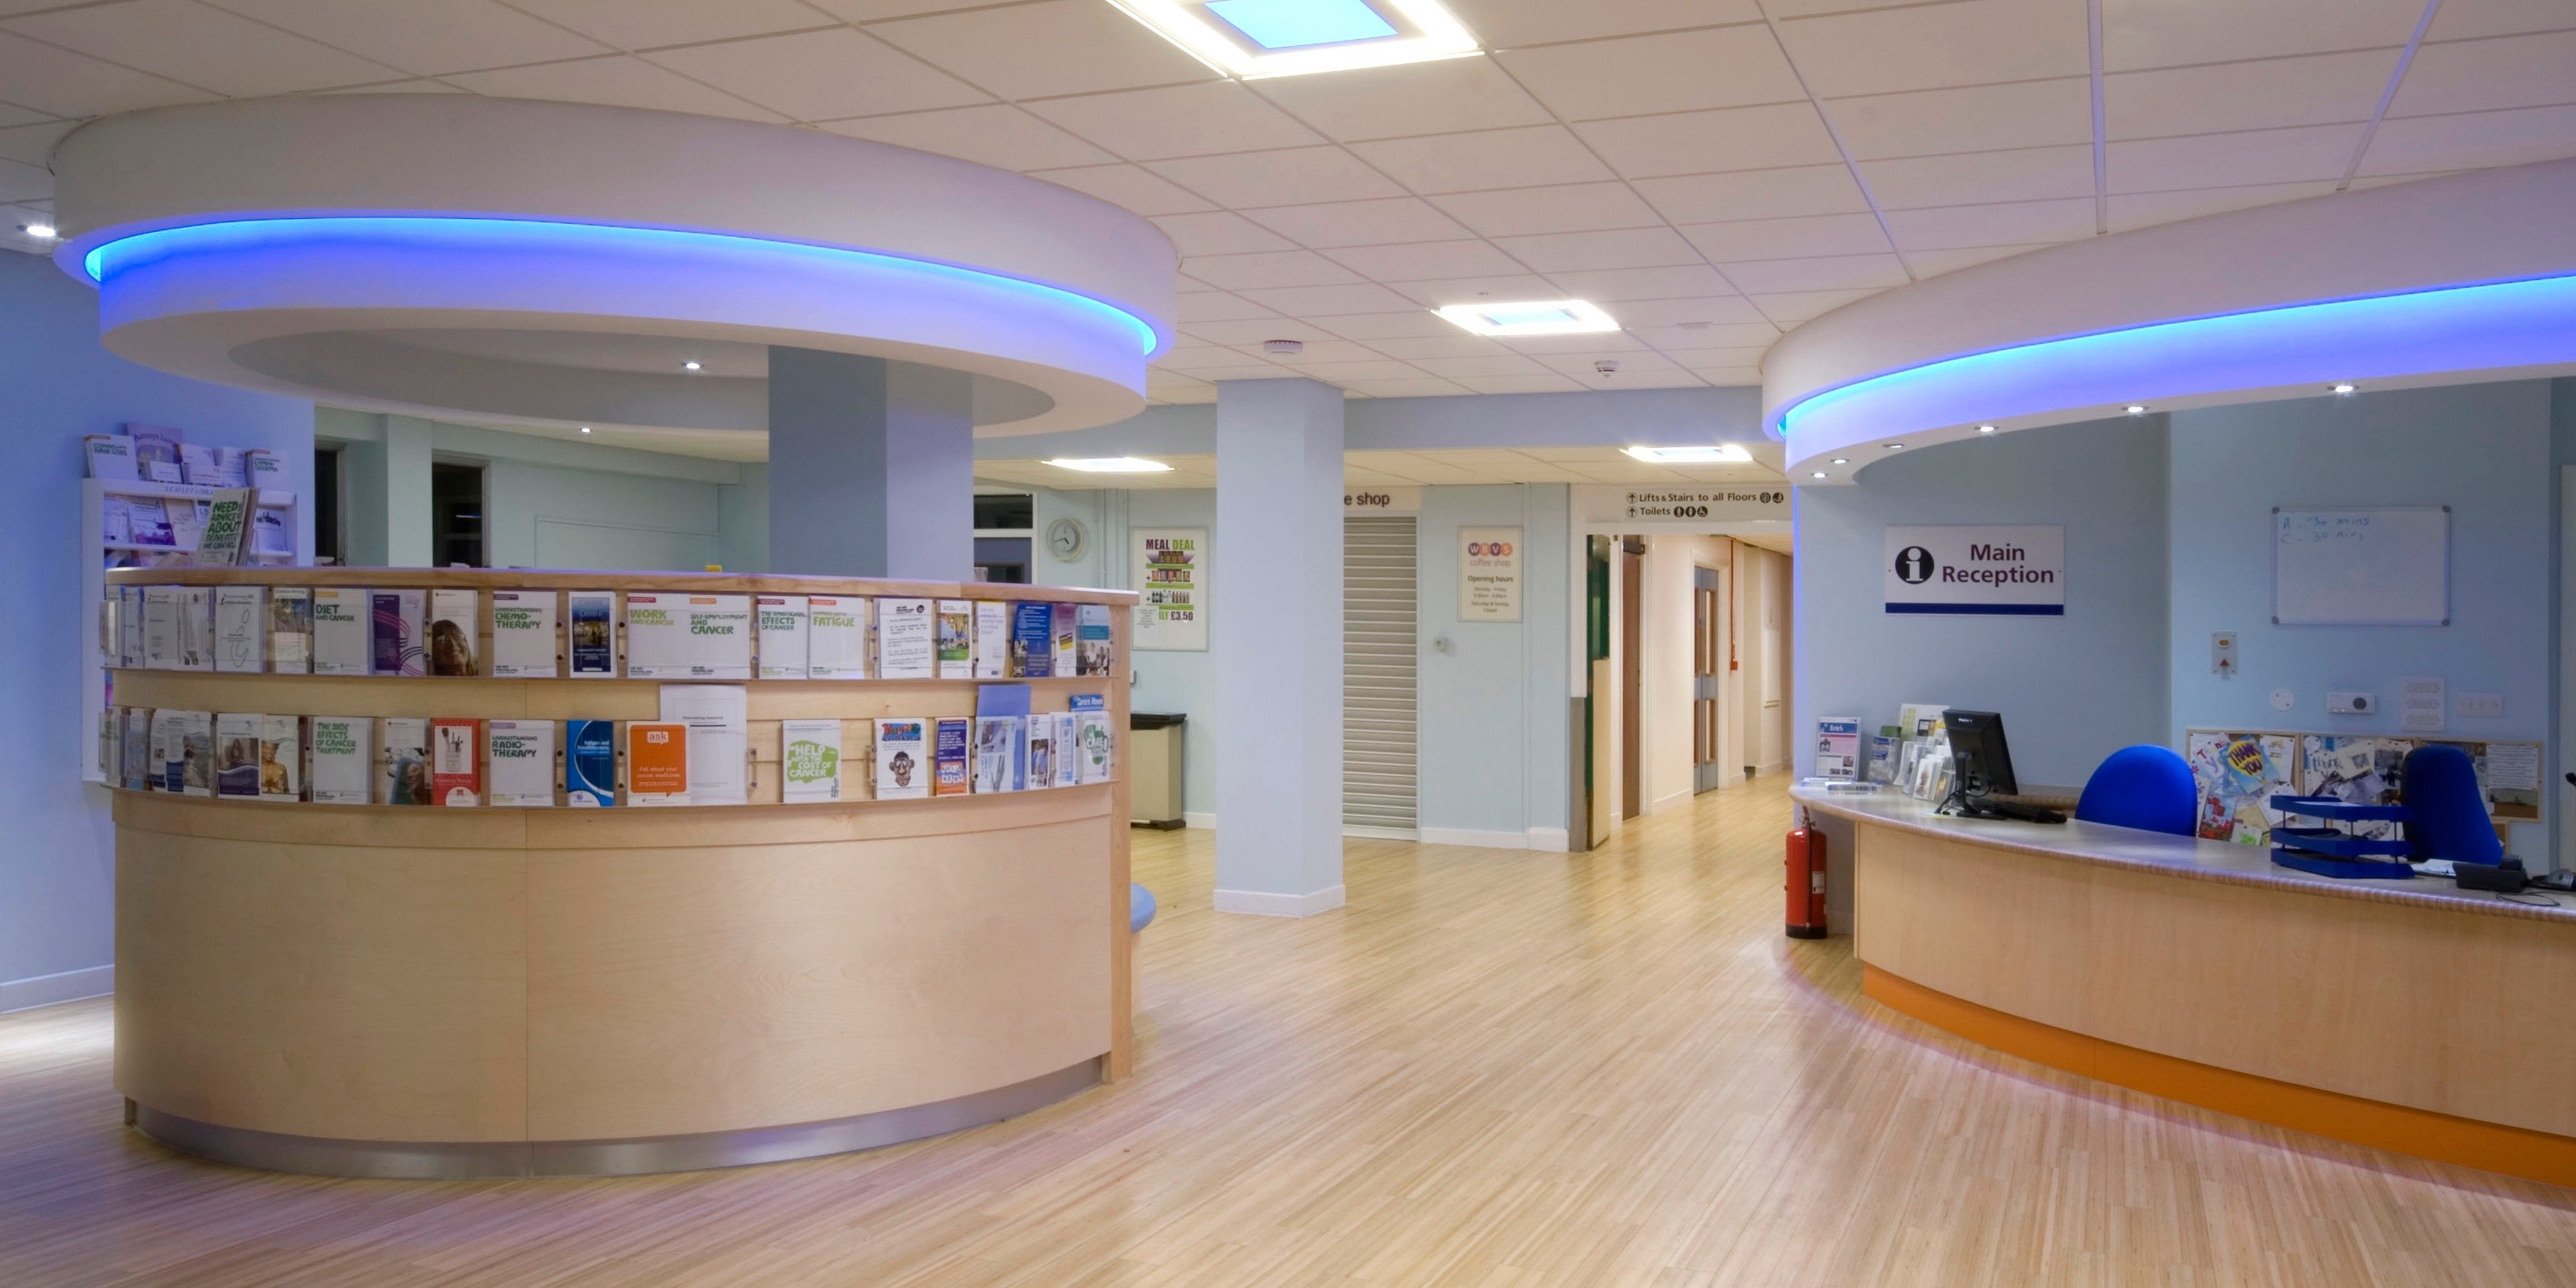 Bristol Haemotology and Oncology Centre, Bristol Royal Infirmary